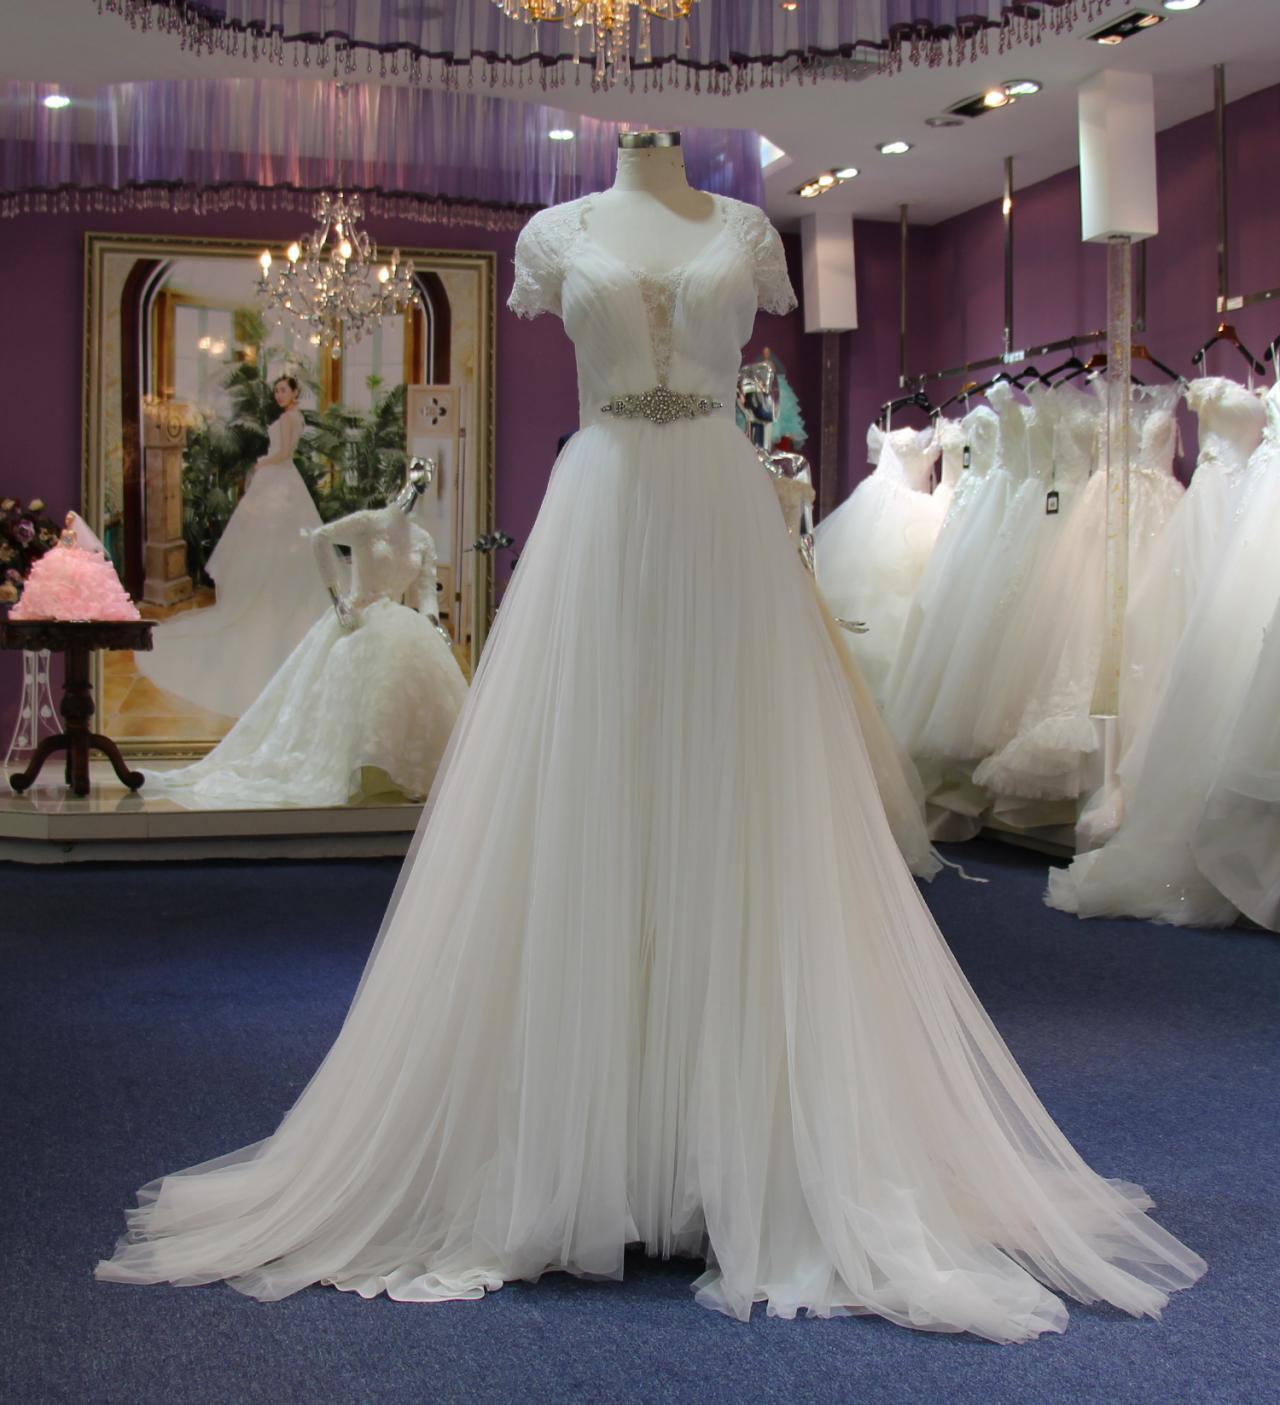 Elegant Ball Gown White Lace Wedding Dresses With Crystal Belt For ...